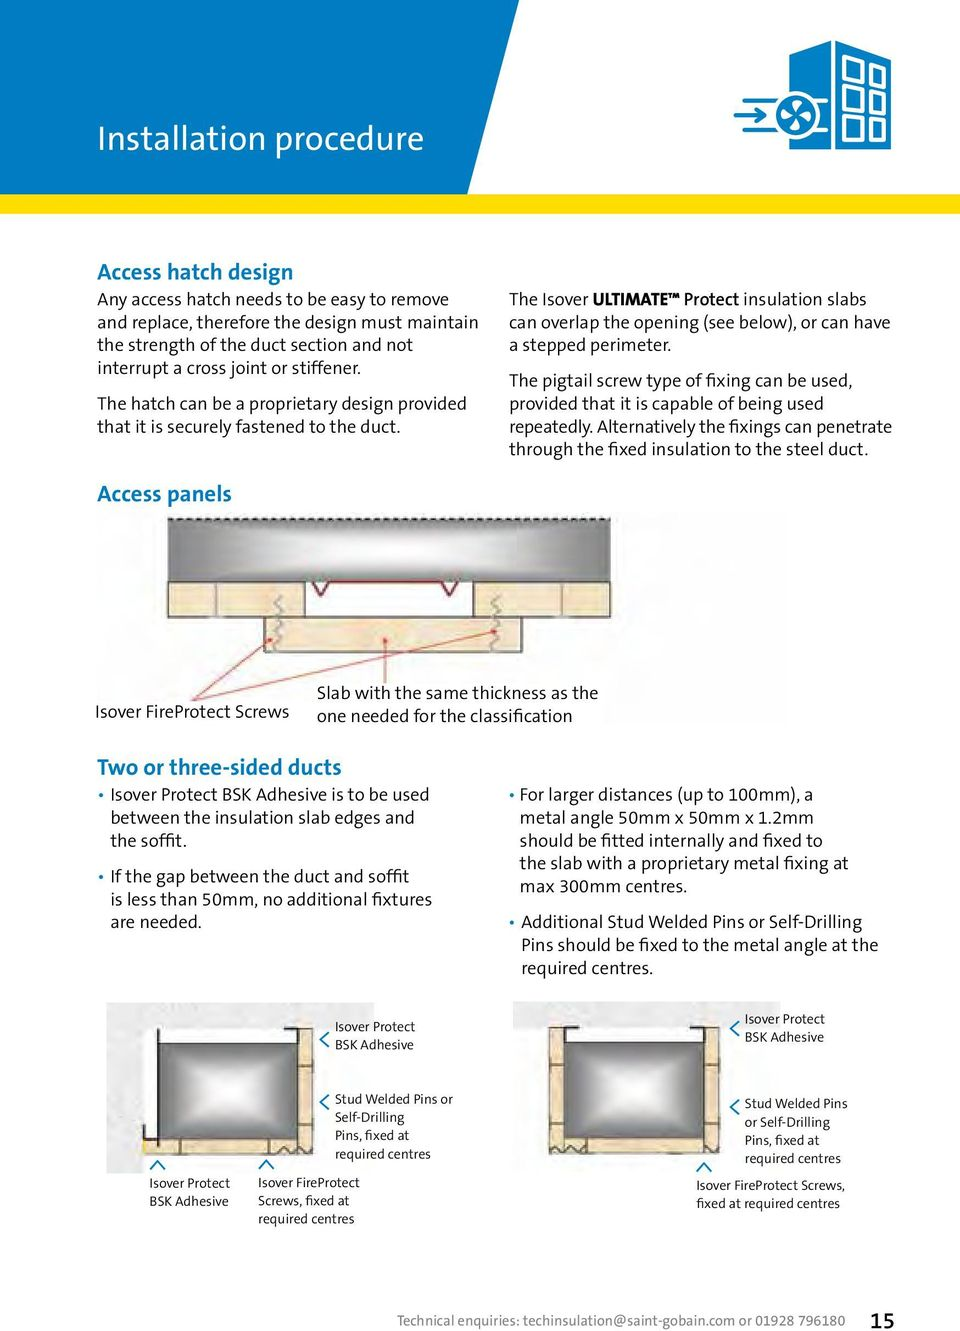 The Isover Ultimate Protect insulation slabs can overlap the opening (see below), or can have a stepped perimeter.